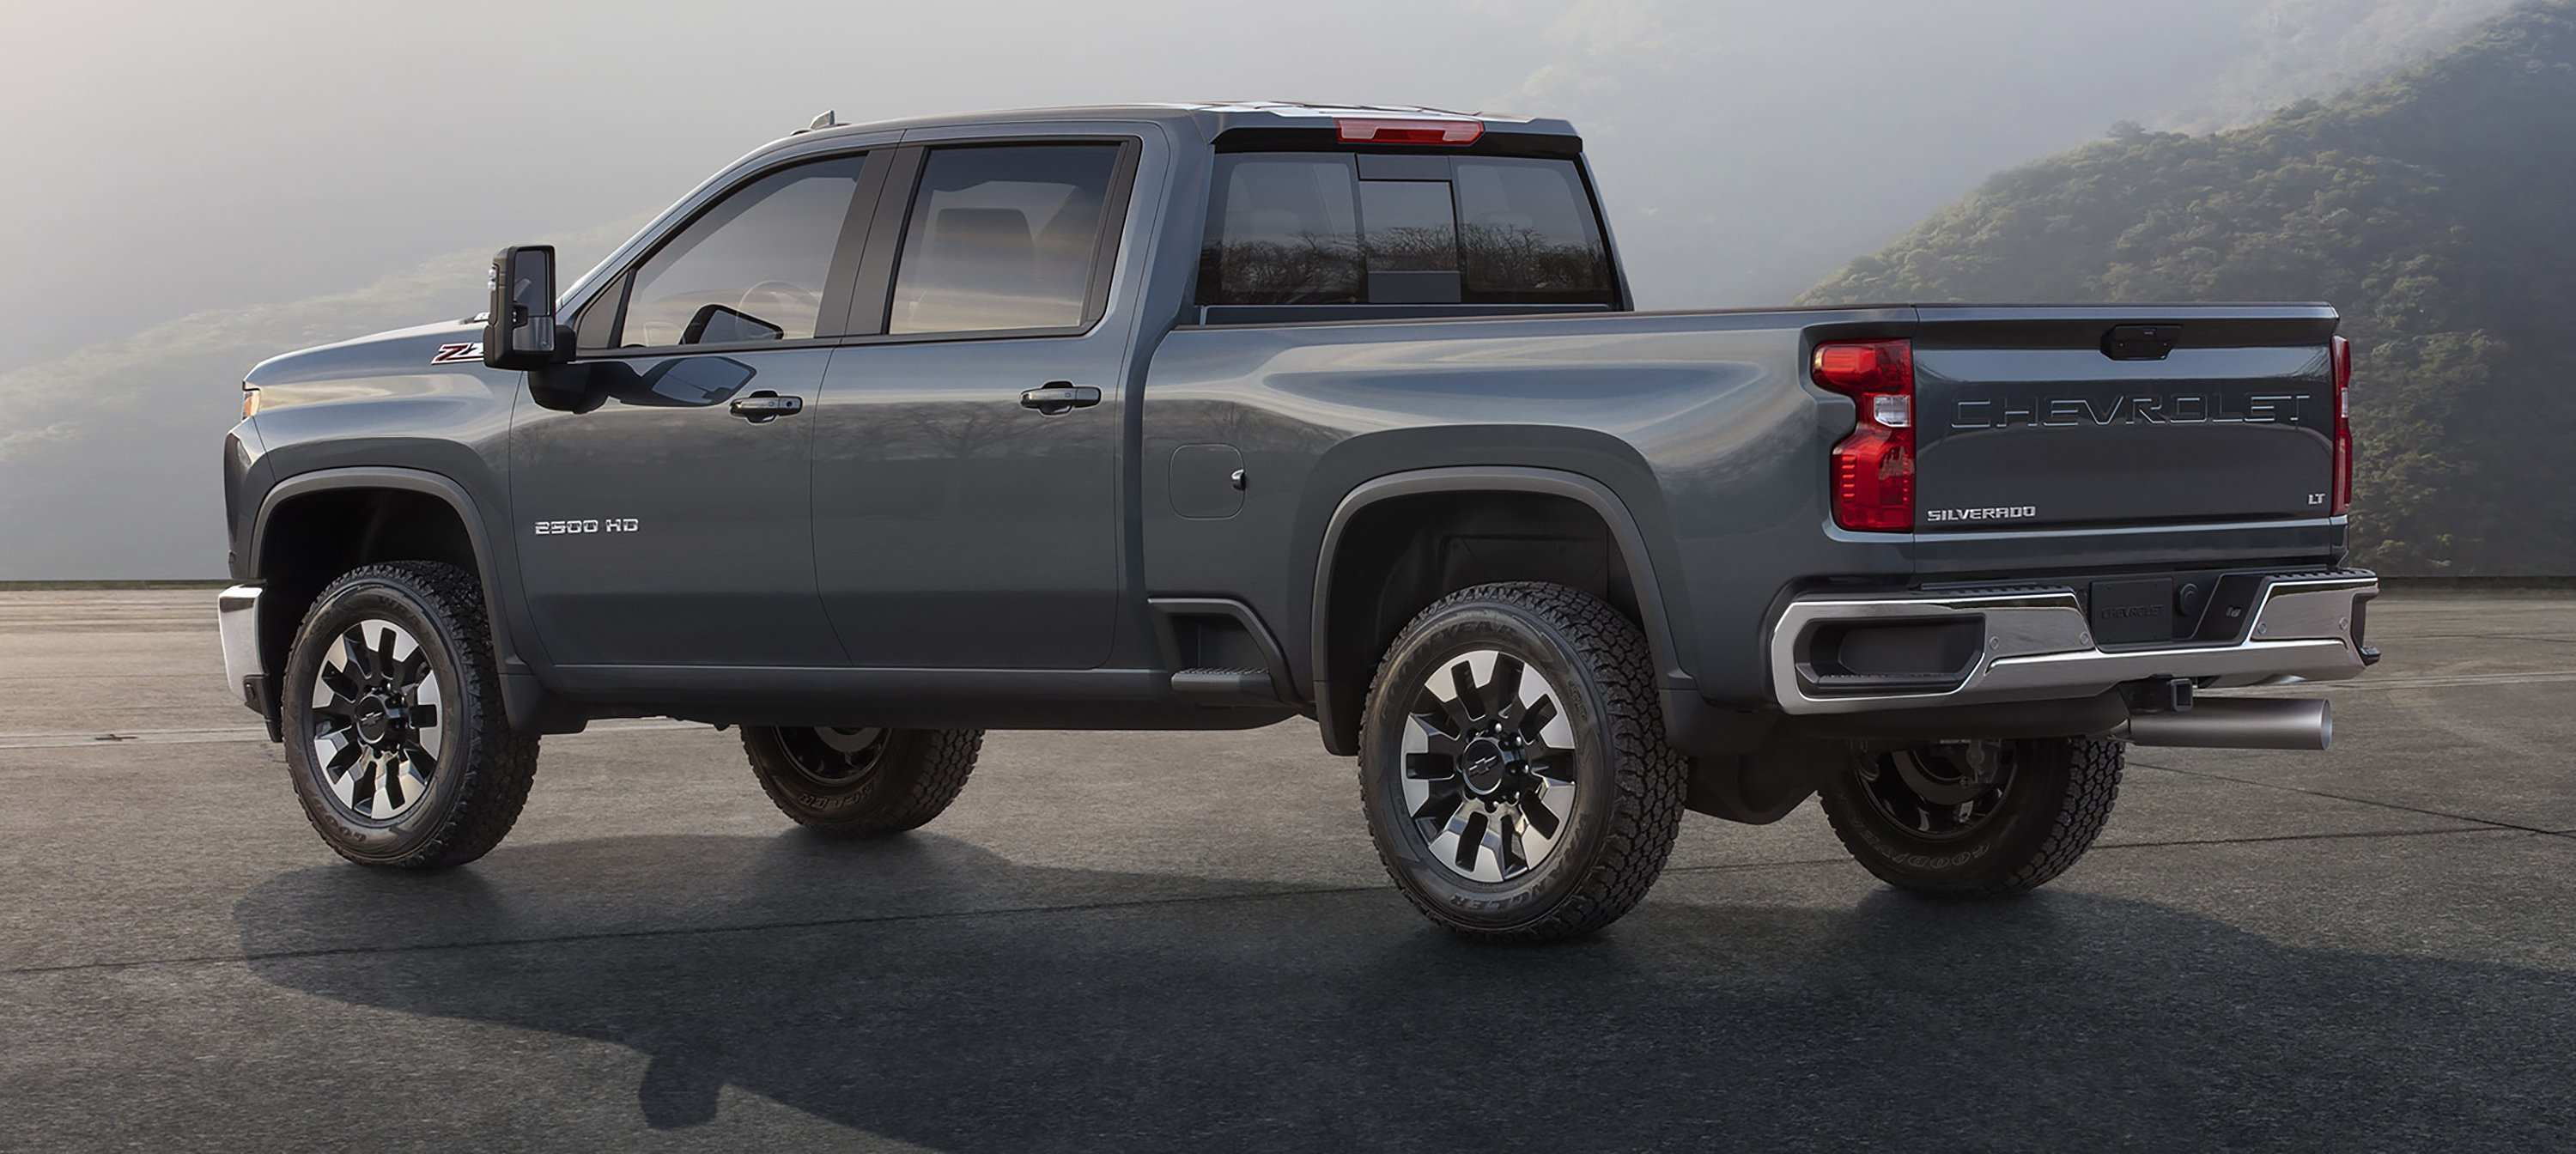 18 All New 2020 Chevy Silverado New Review with 2020 Chevy Silverado